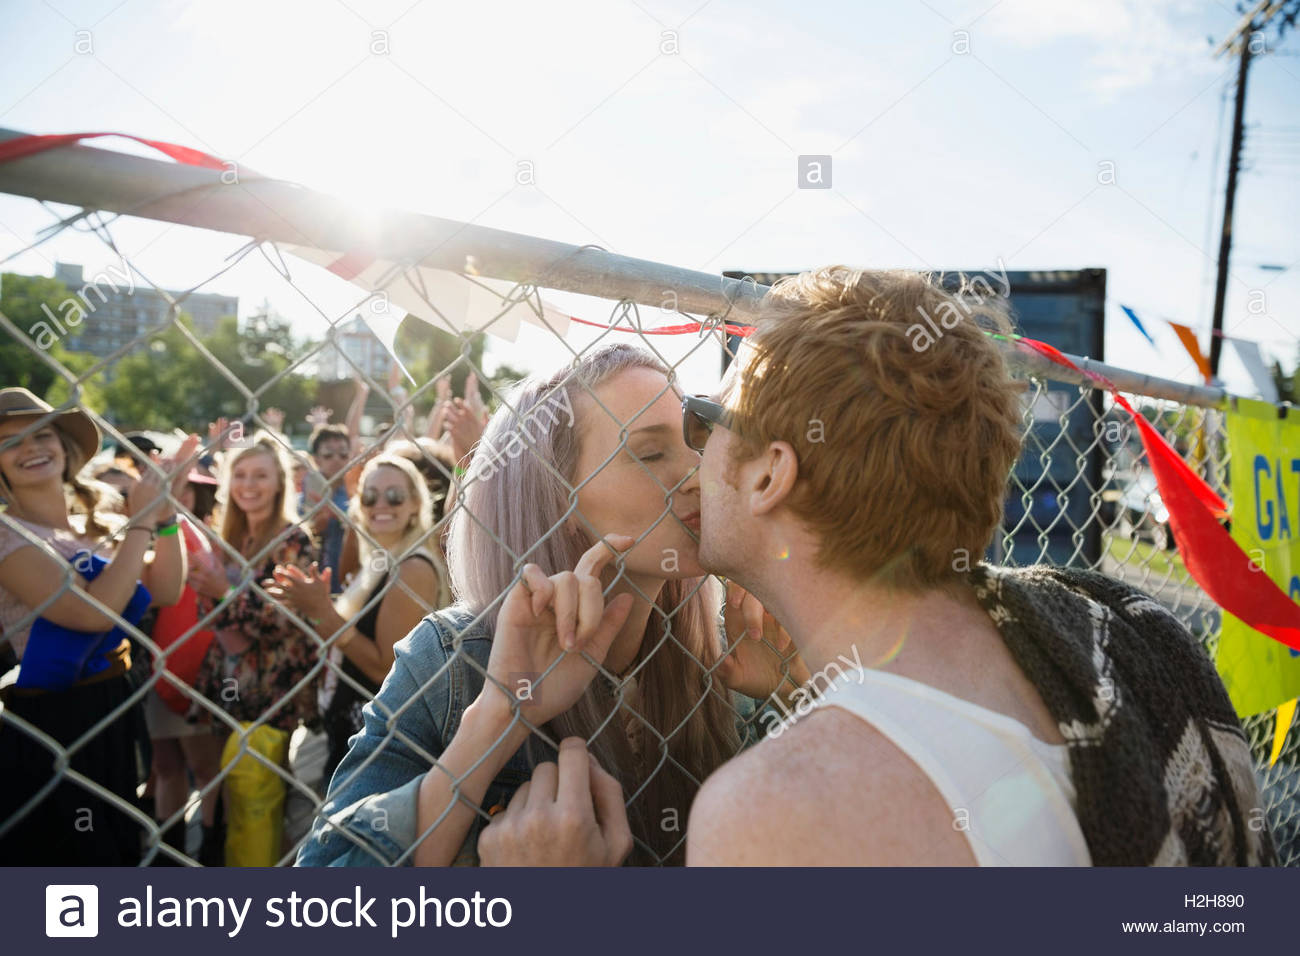 Young couple kissing through chainlink fence at summer music concert - Stock Image